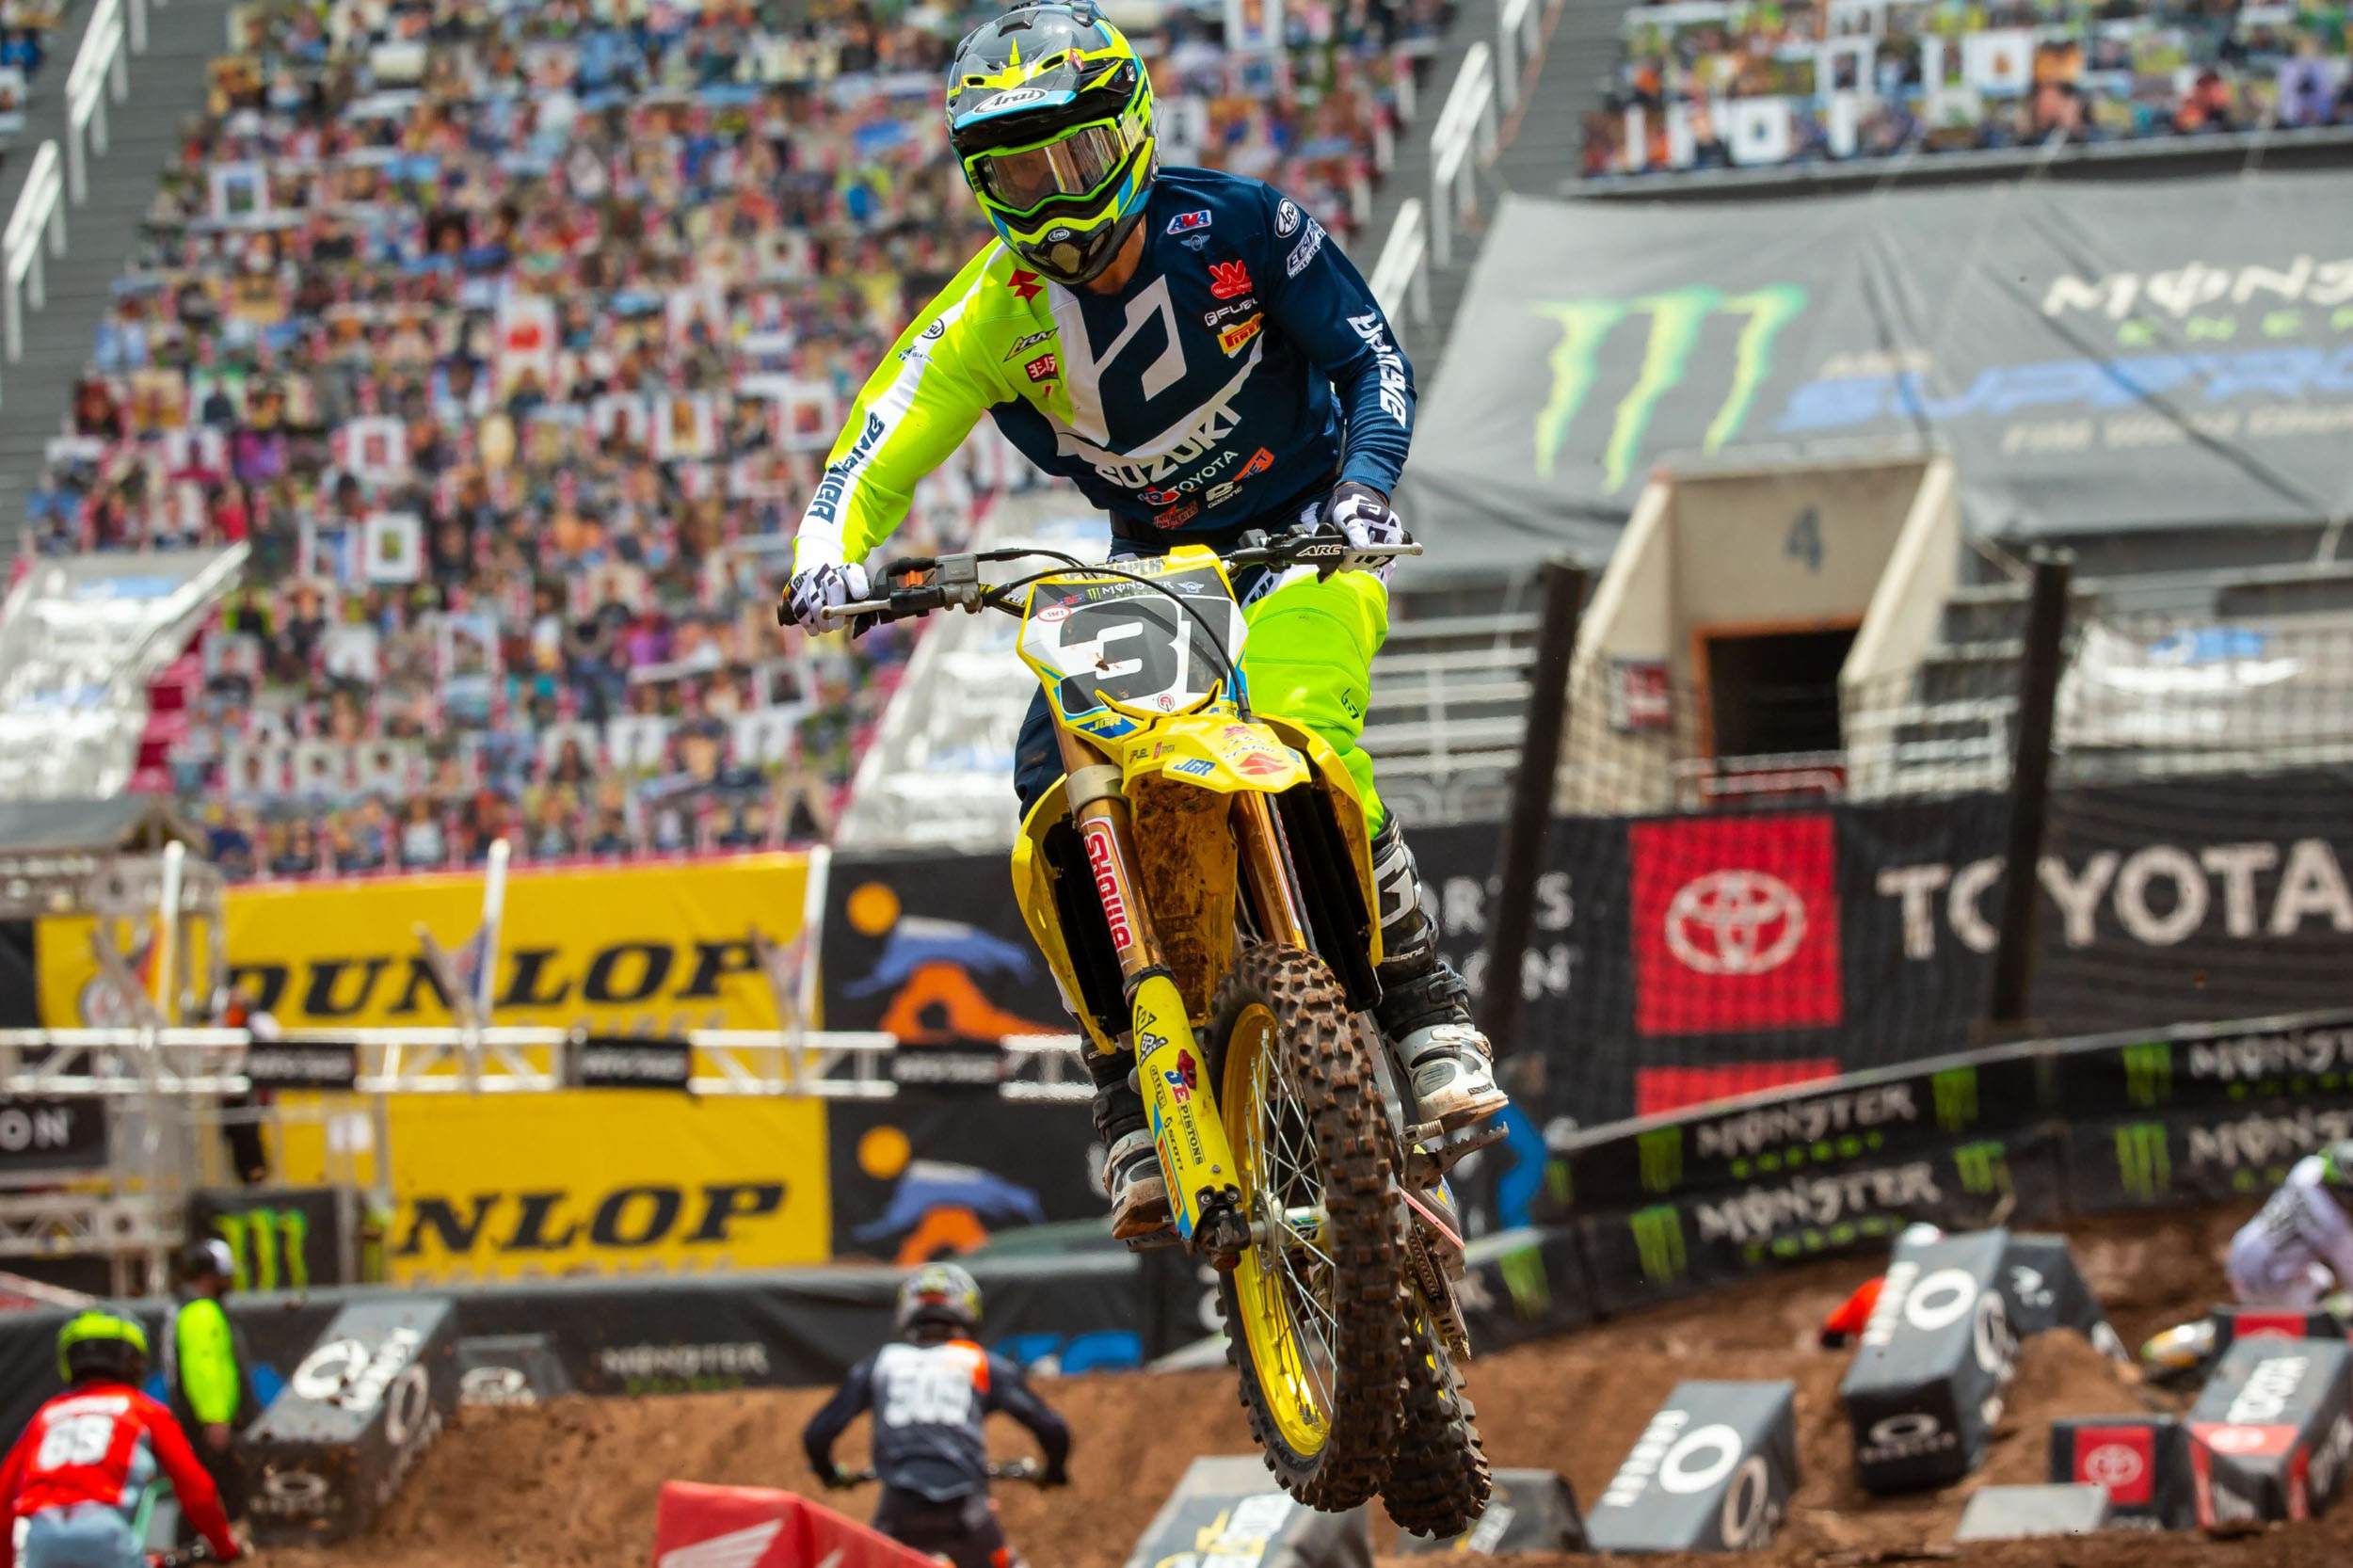 Freddie Noren (#31) crosses the checkered flag with a season-best finish on his RM-Z450